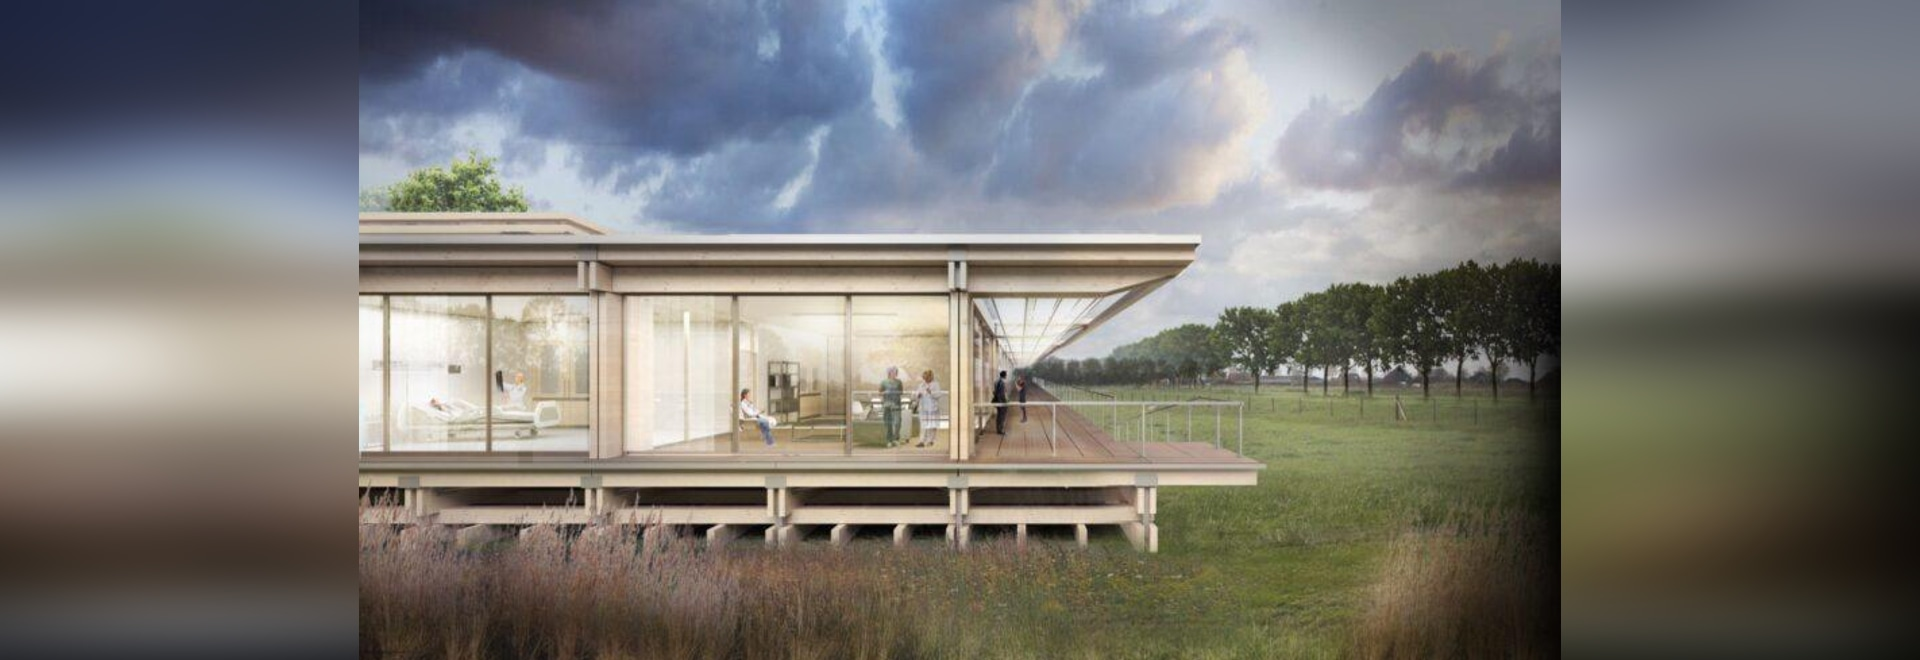 Pop-up prefab hospitals proposed as healthcare centers during pandemics